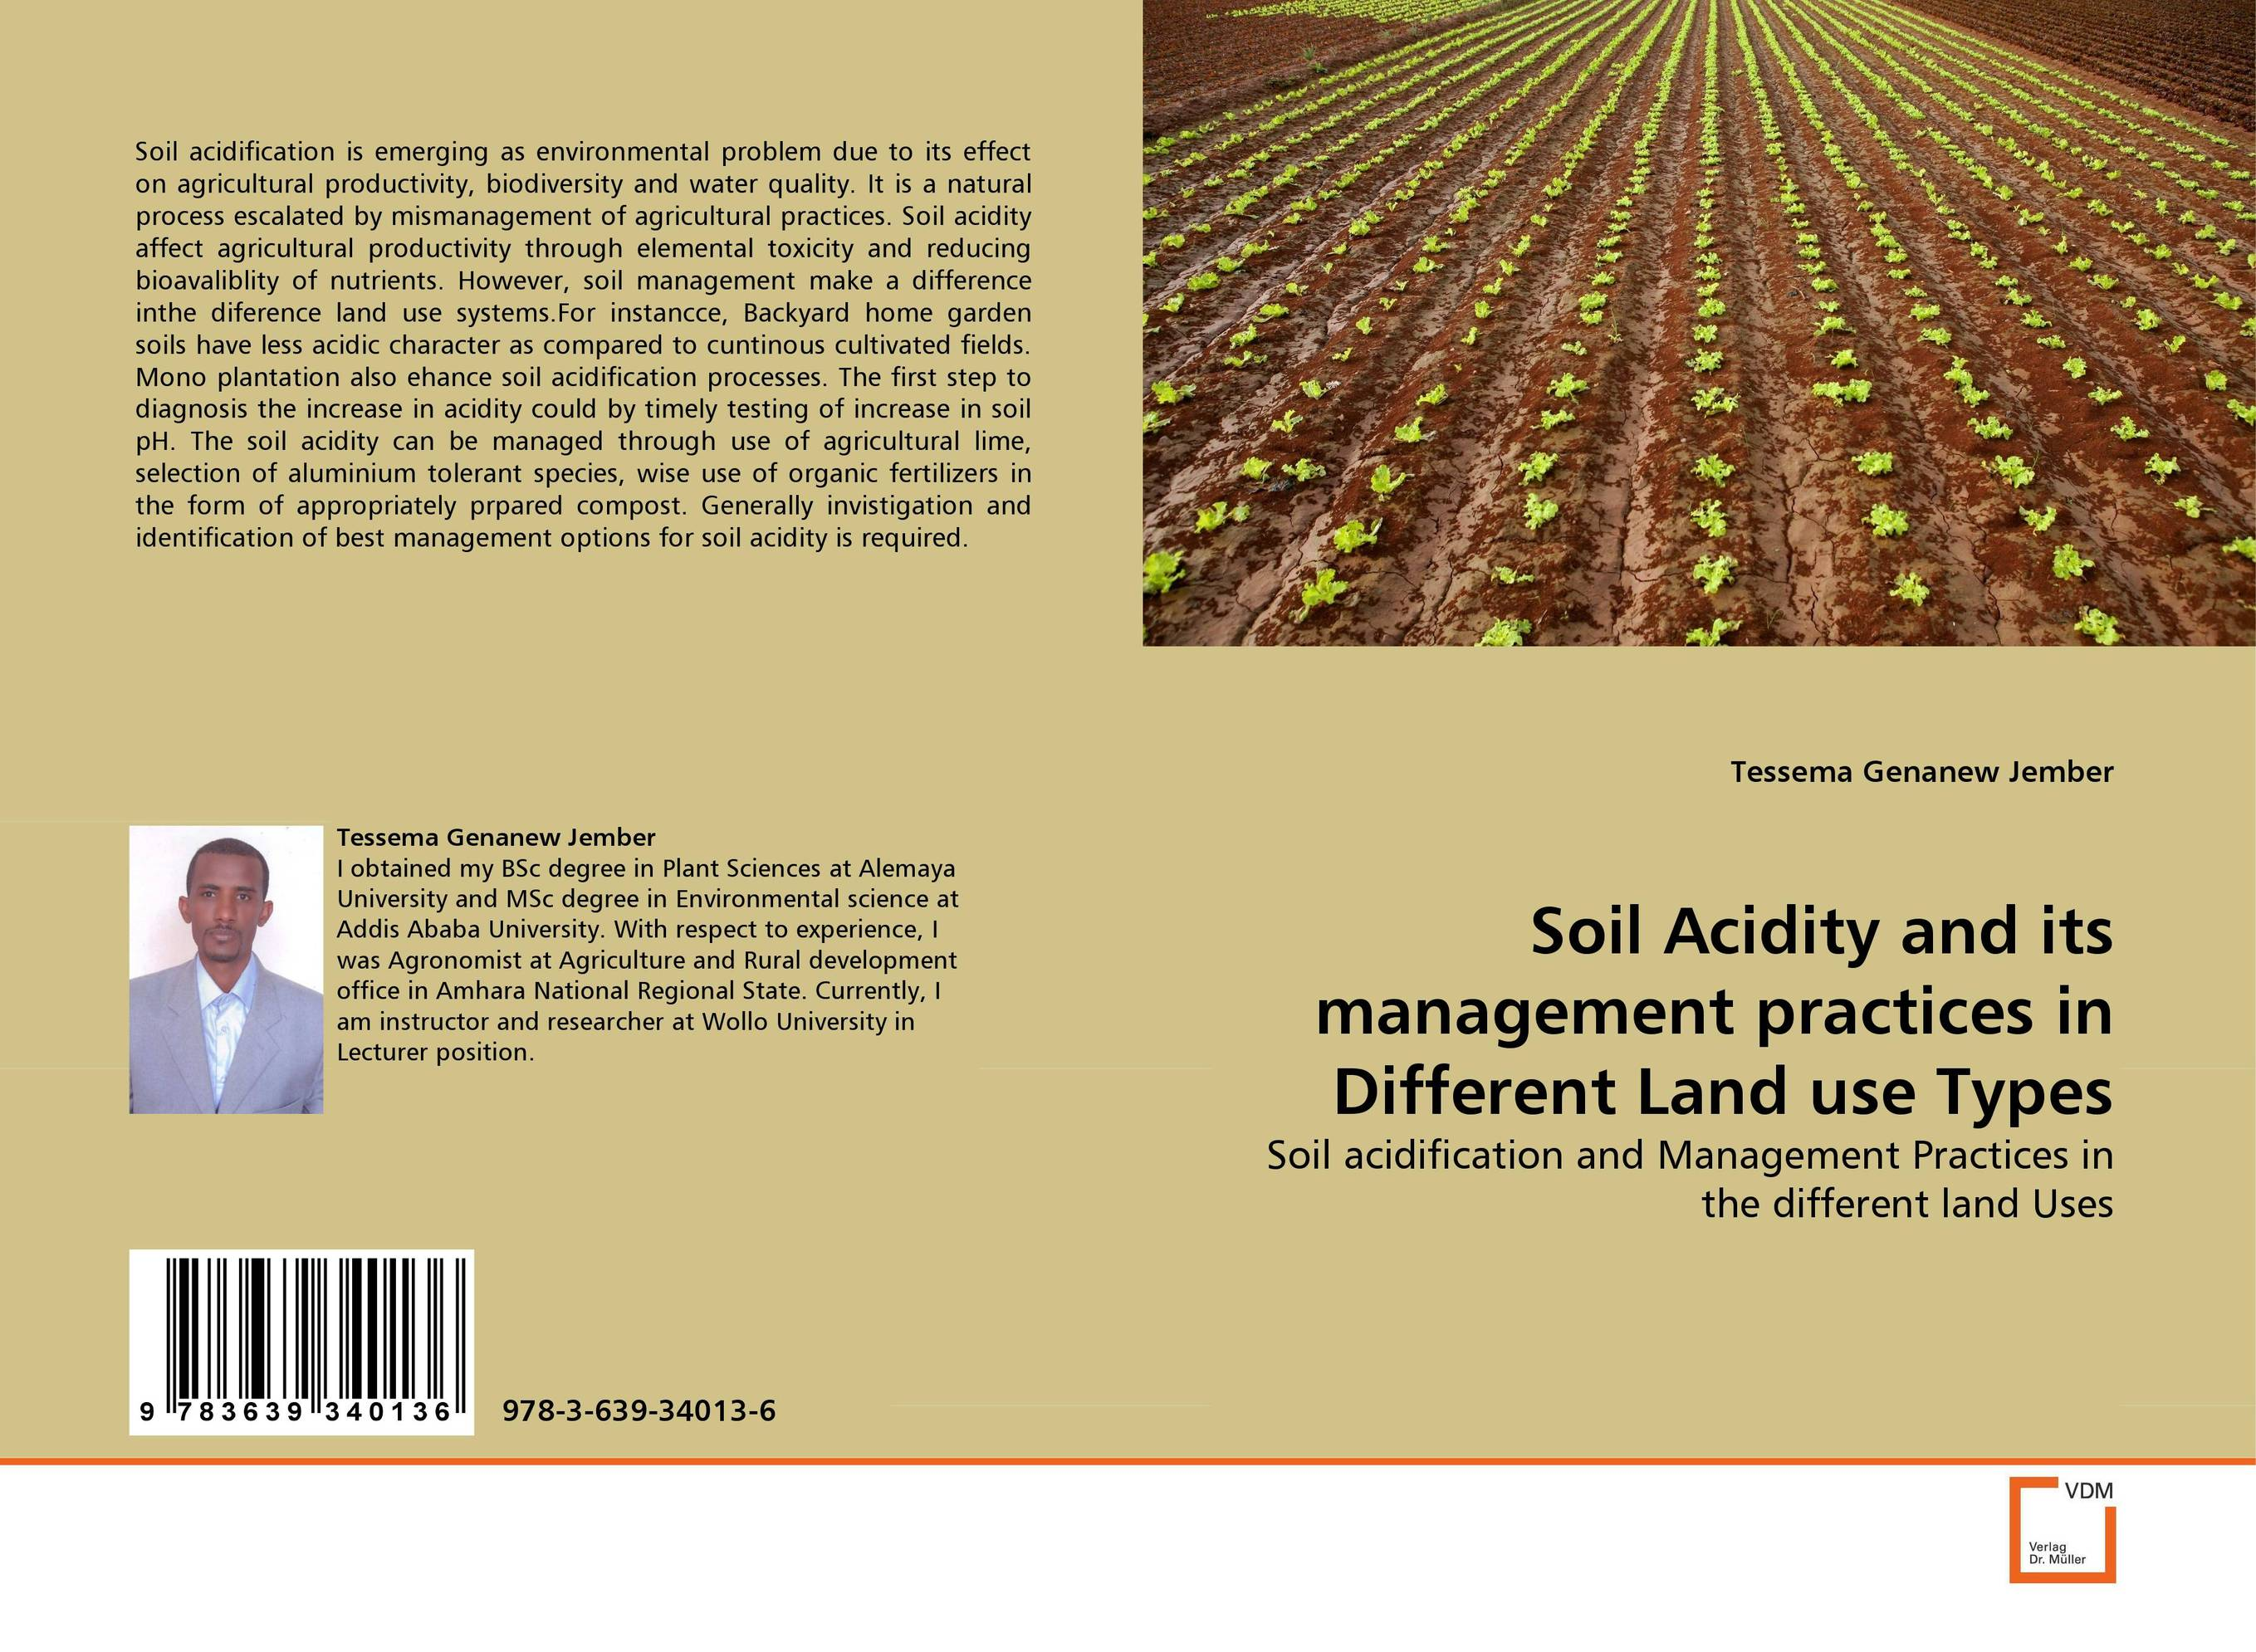 Soil Acidity and its management practices in Different Land use Types the diagnosis and management of agitation